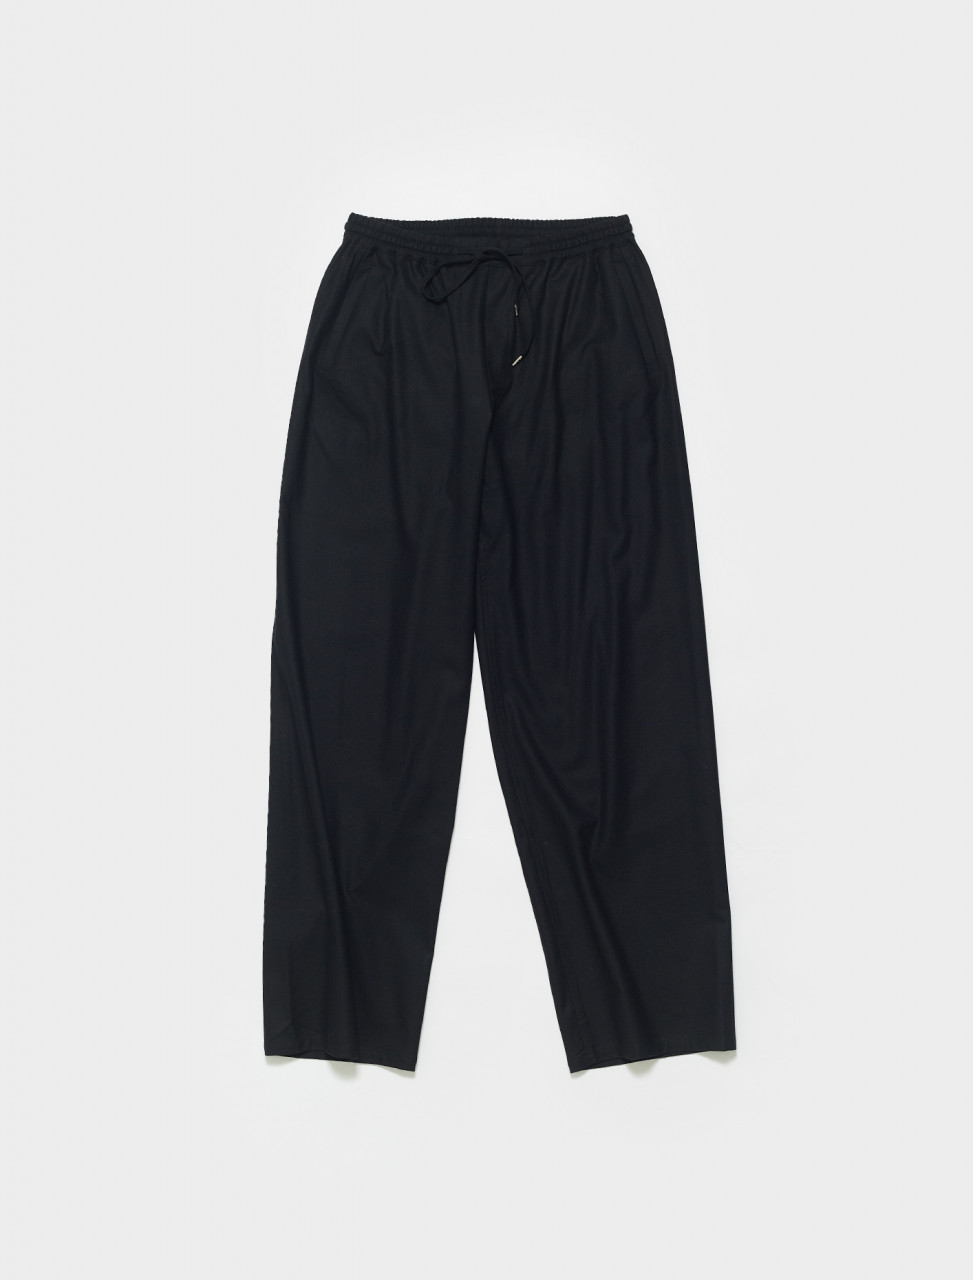 106-20301 A KIND OF GUISE SAMURAI TROUSER IN BLACK FLANNEL